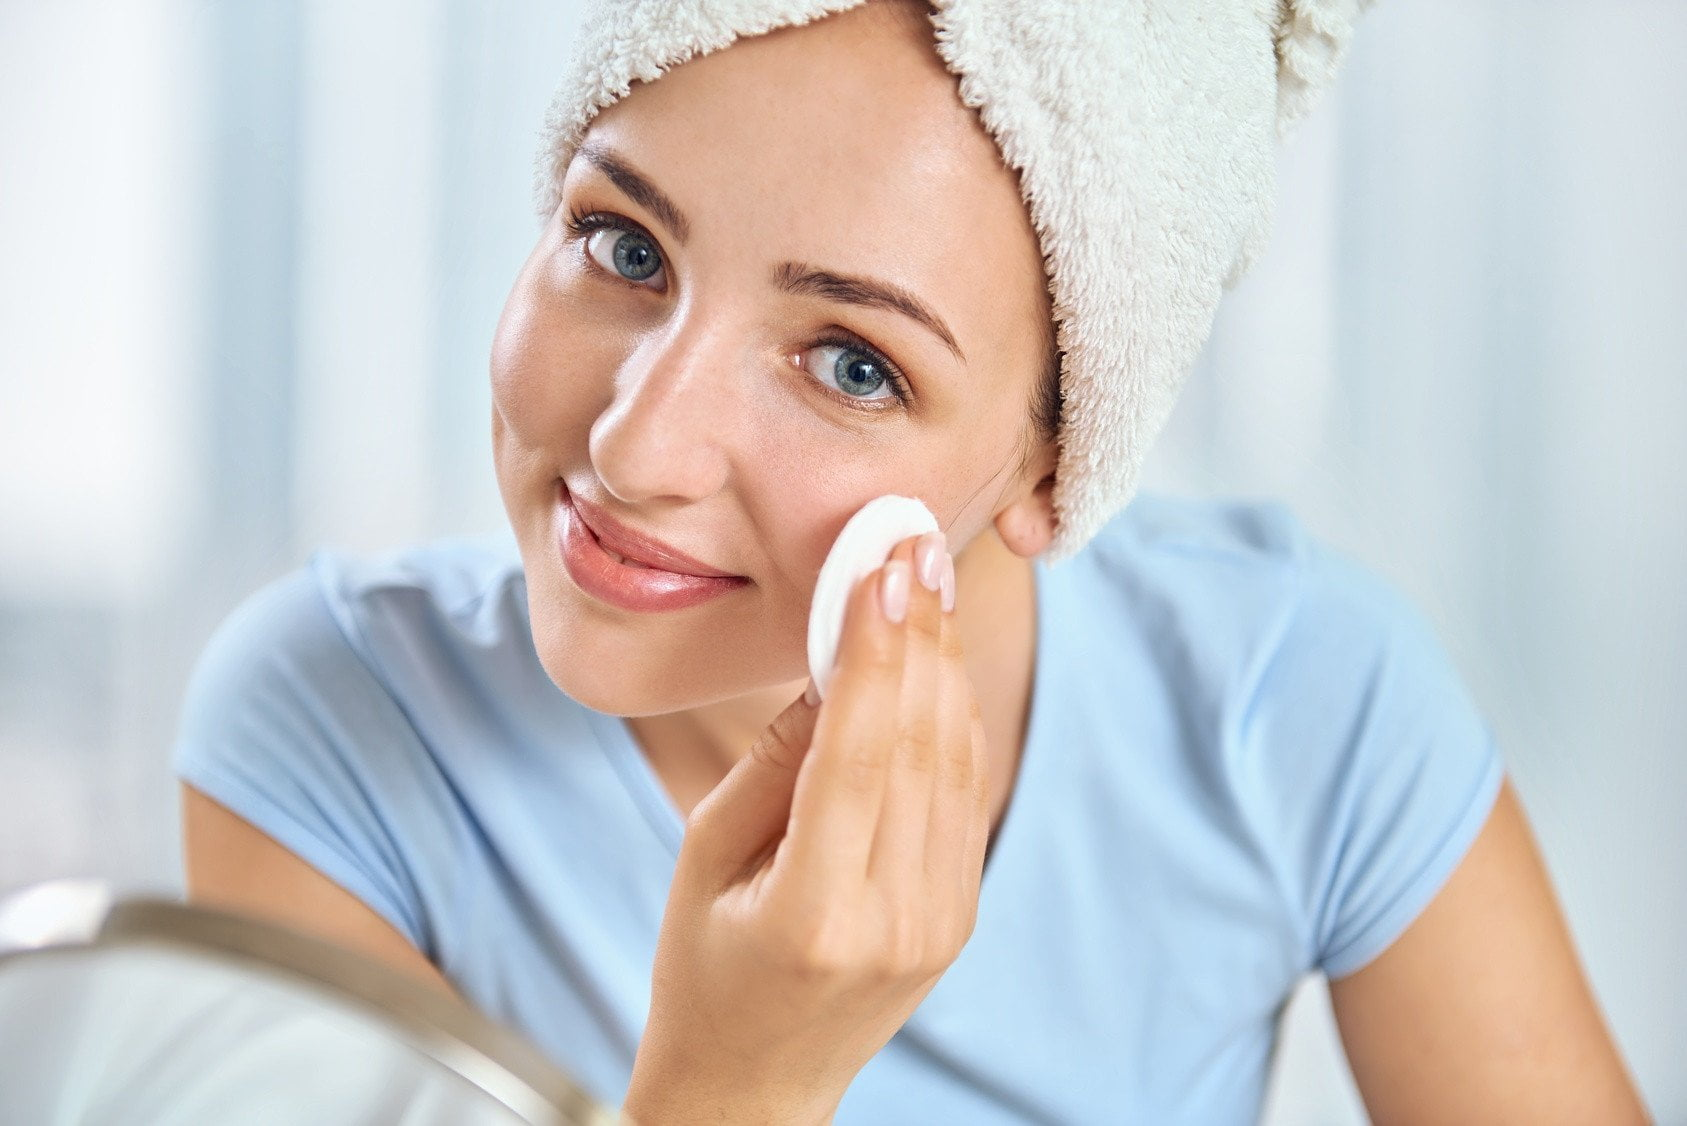 Advanced Skin Care: Let's Talk About Your Routine